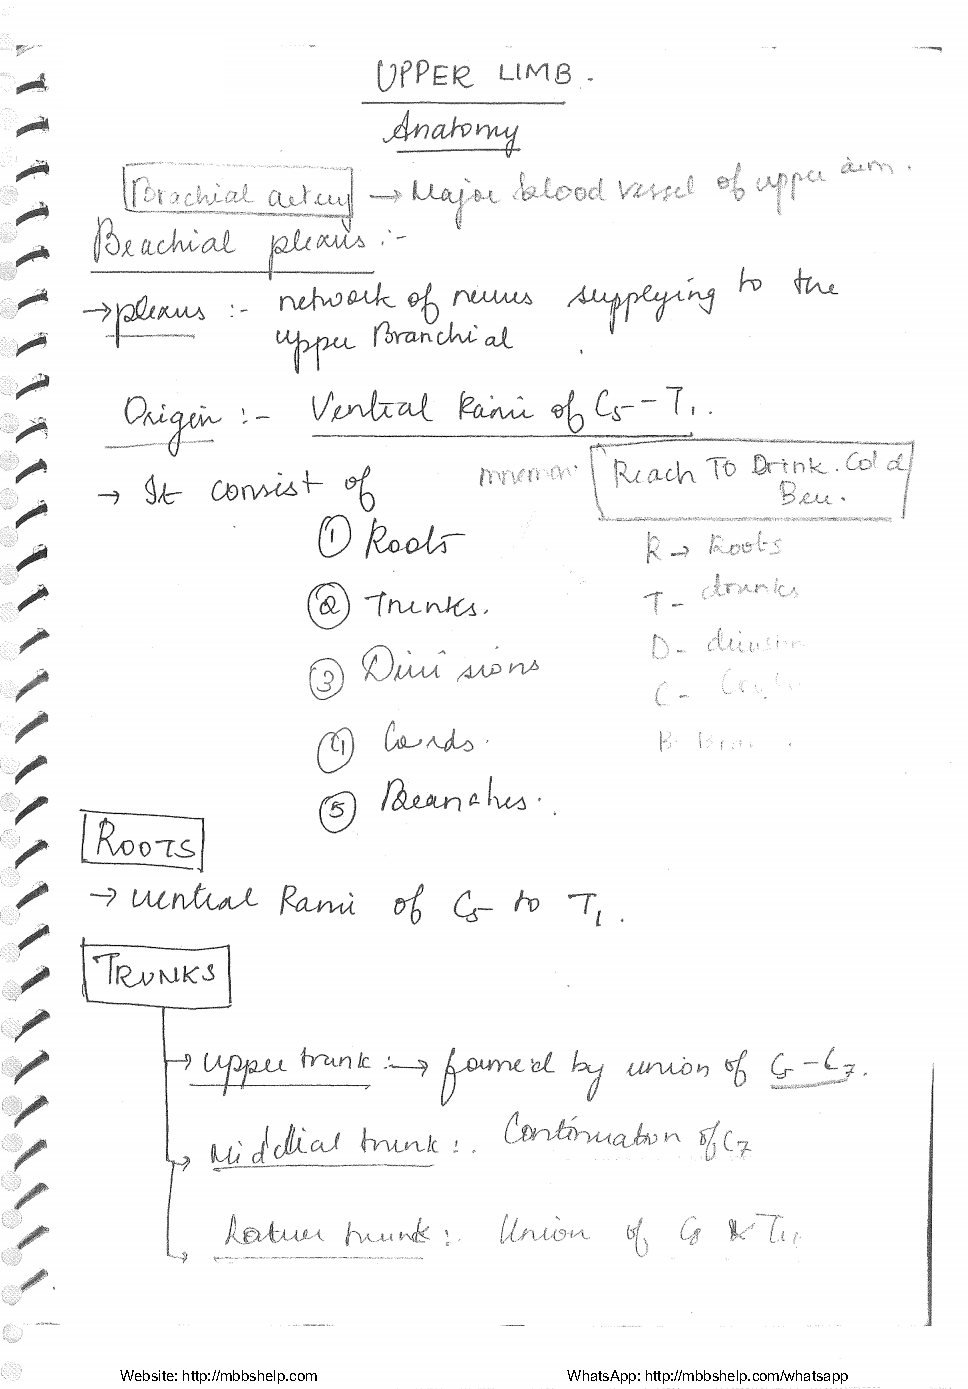 MIST Handwritten Notes - Latest (19 Subject) - MBBS Help